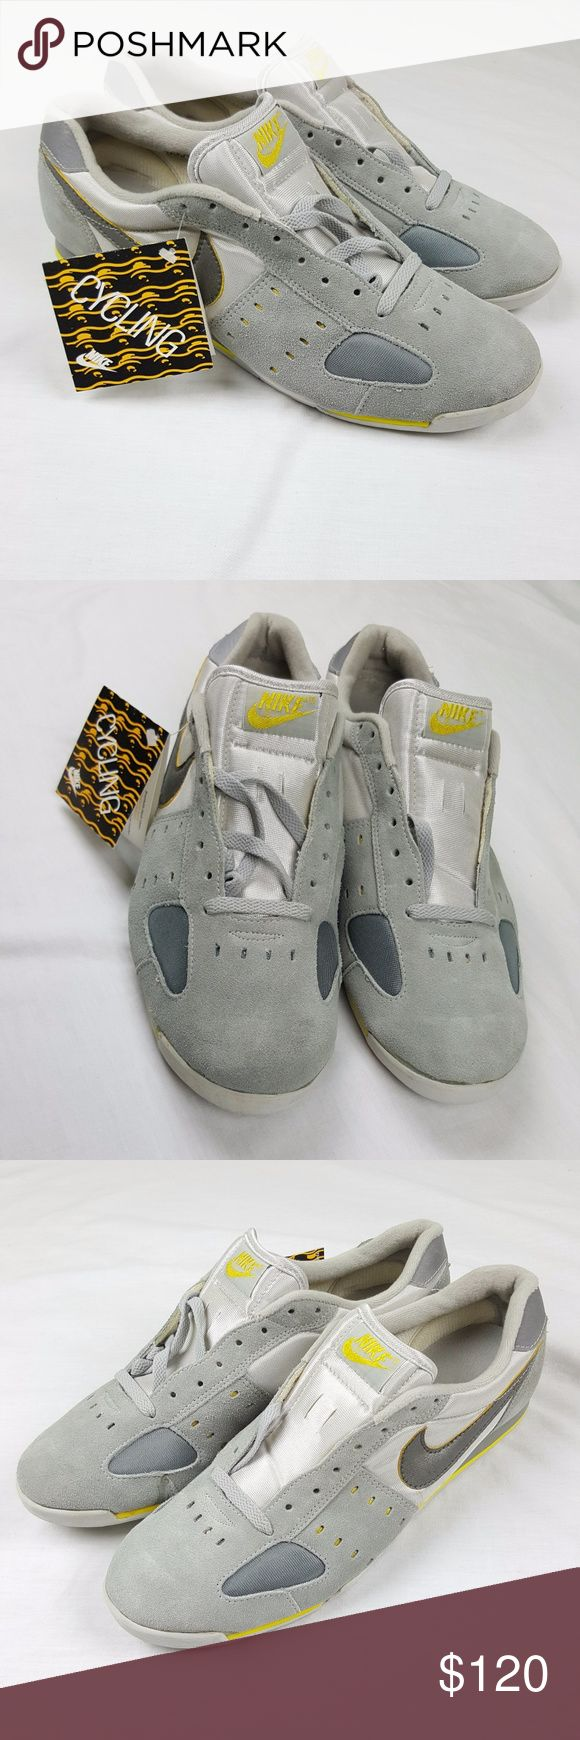 Nike Velo Cycling Shoes 1984 80s 90s funk Sz 12 OG Brand new with tag new old stock from 1980's. Has few marking here and there can see in pictures to see full details. In good condition for there age. Own a piece of nike history from 30 years ago. Nike Shoes Sneakers